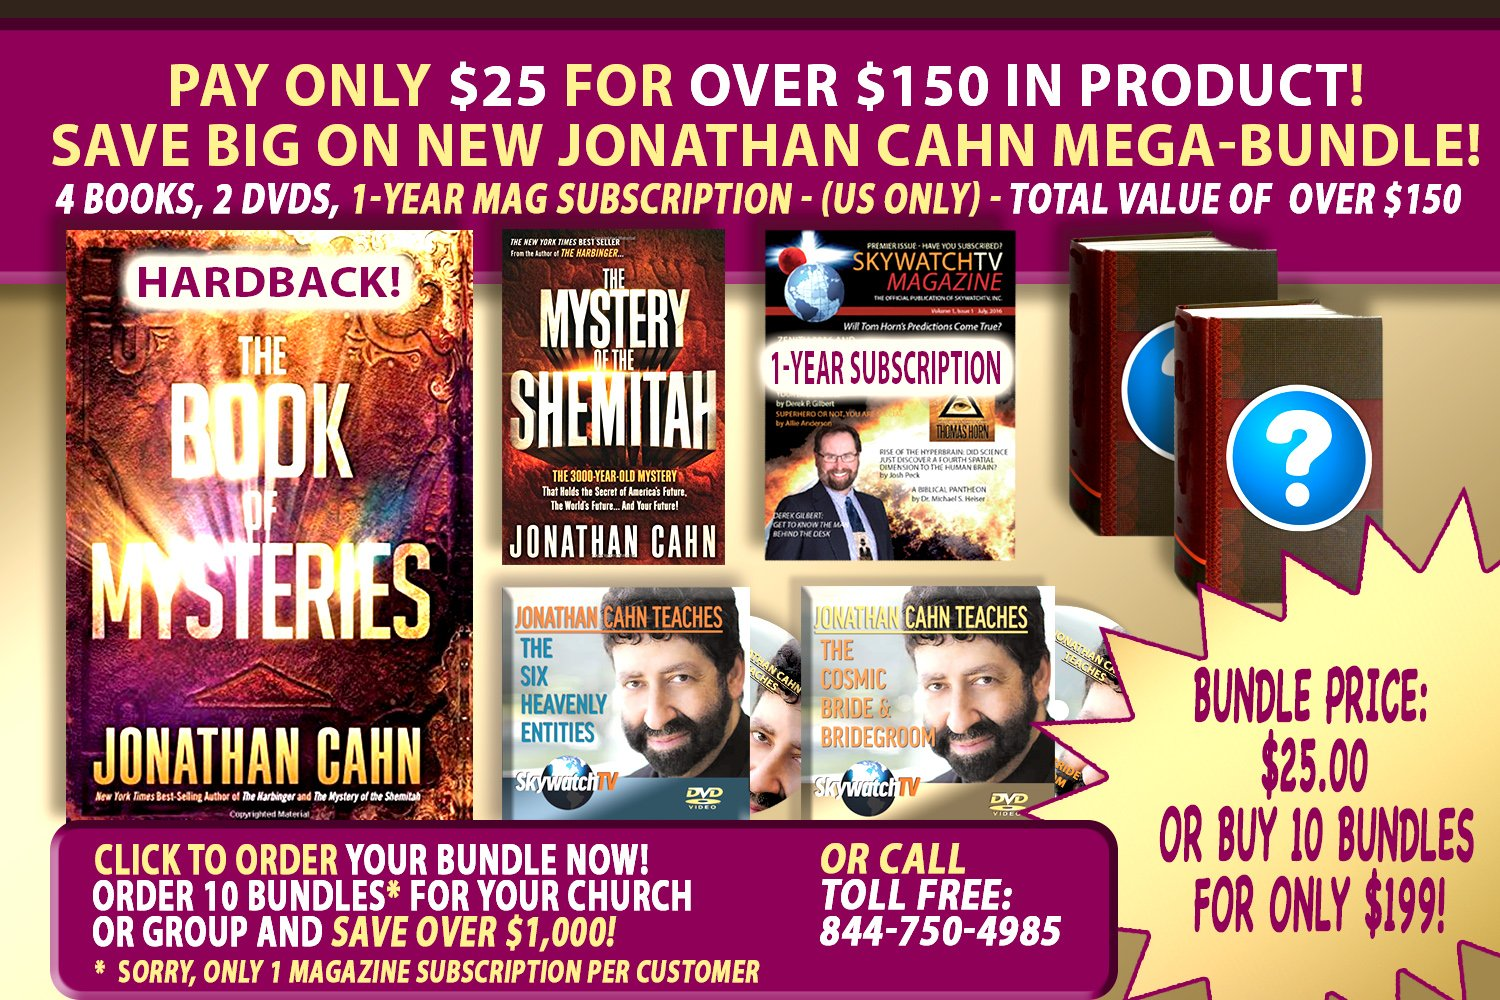 LIMITED TIME MASSIVE GIVEAWAY WITH RABBI JONATHAN CAHN'S NEW